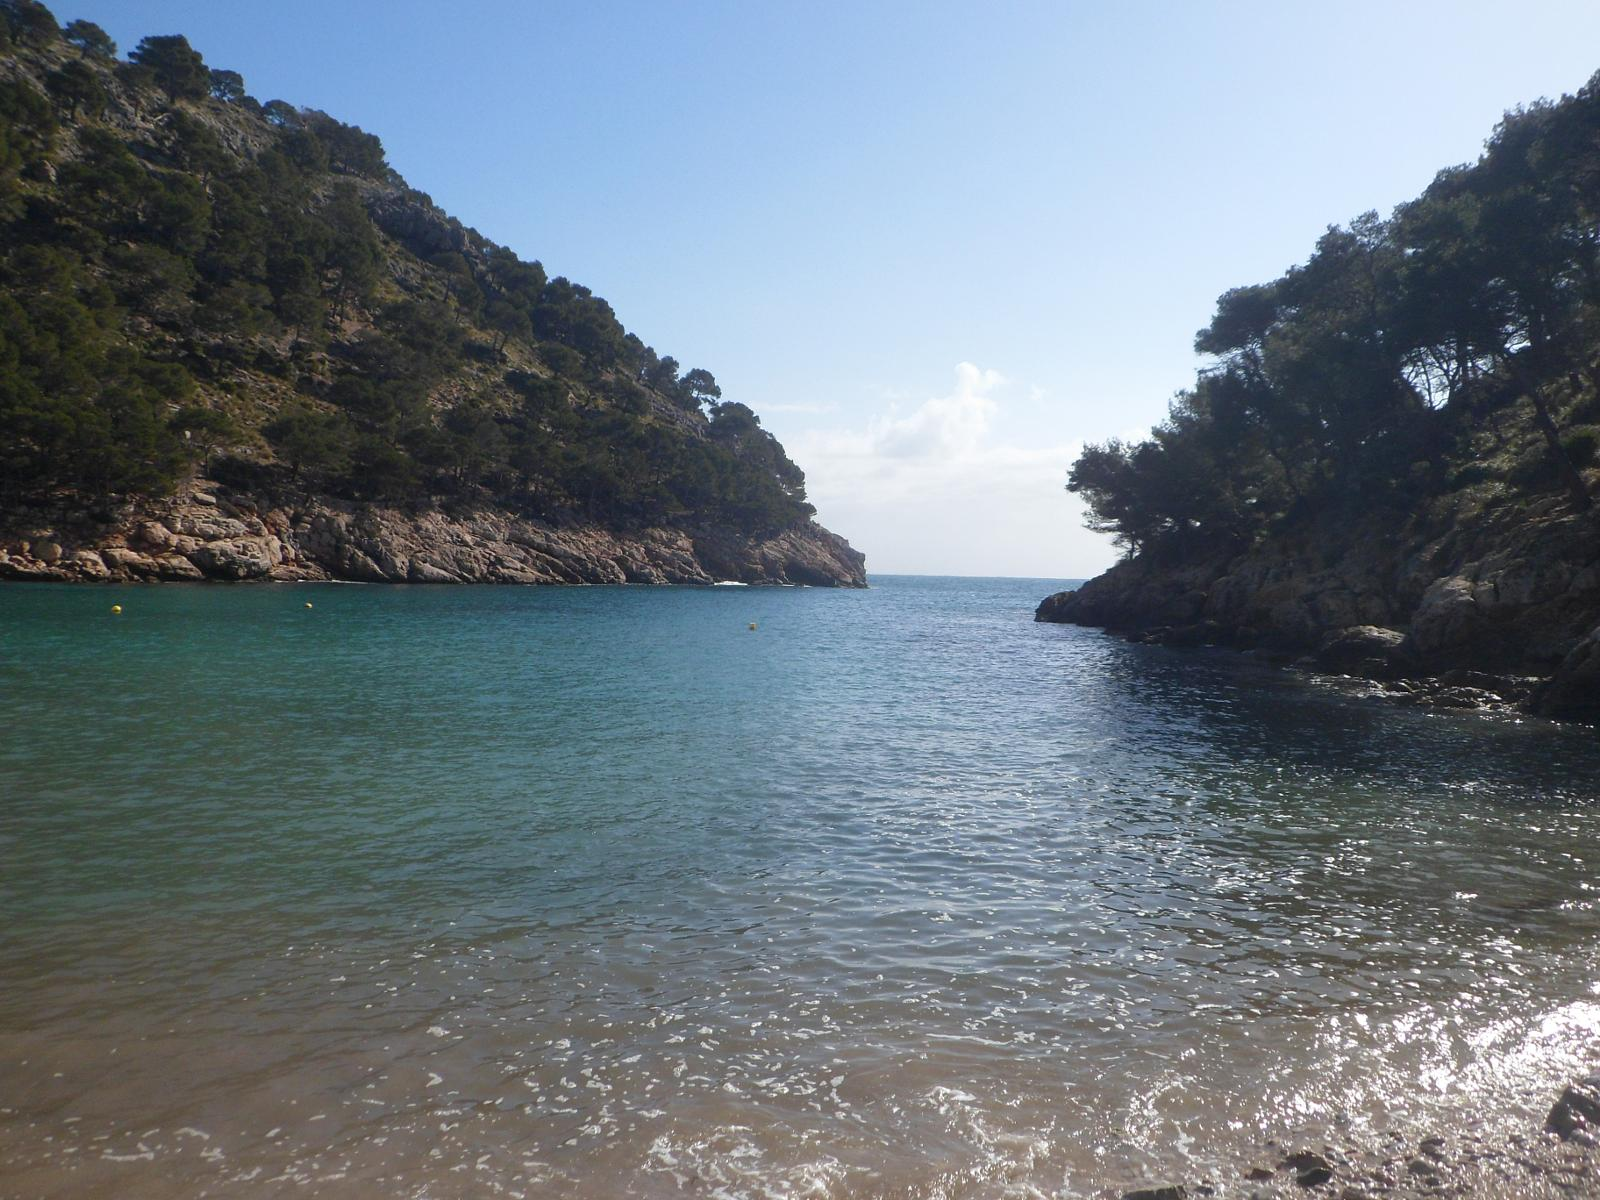 Photo of Cala Murta & & Cala Figuera - 28-02-15